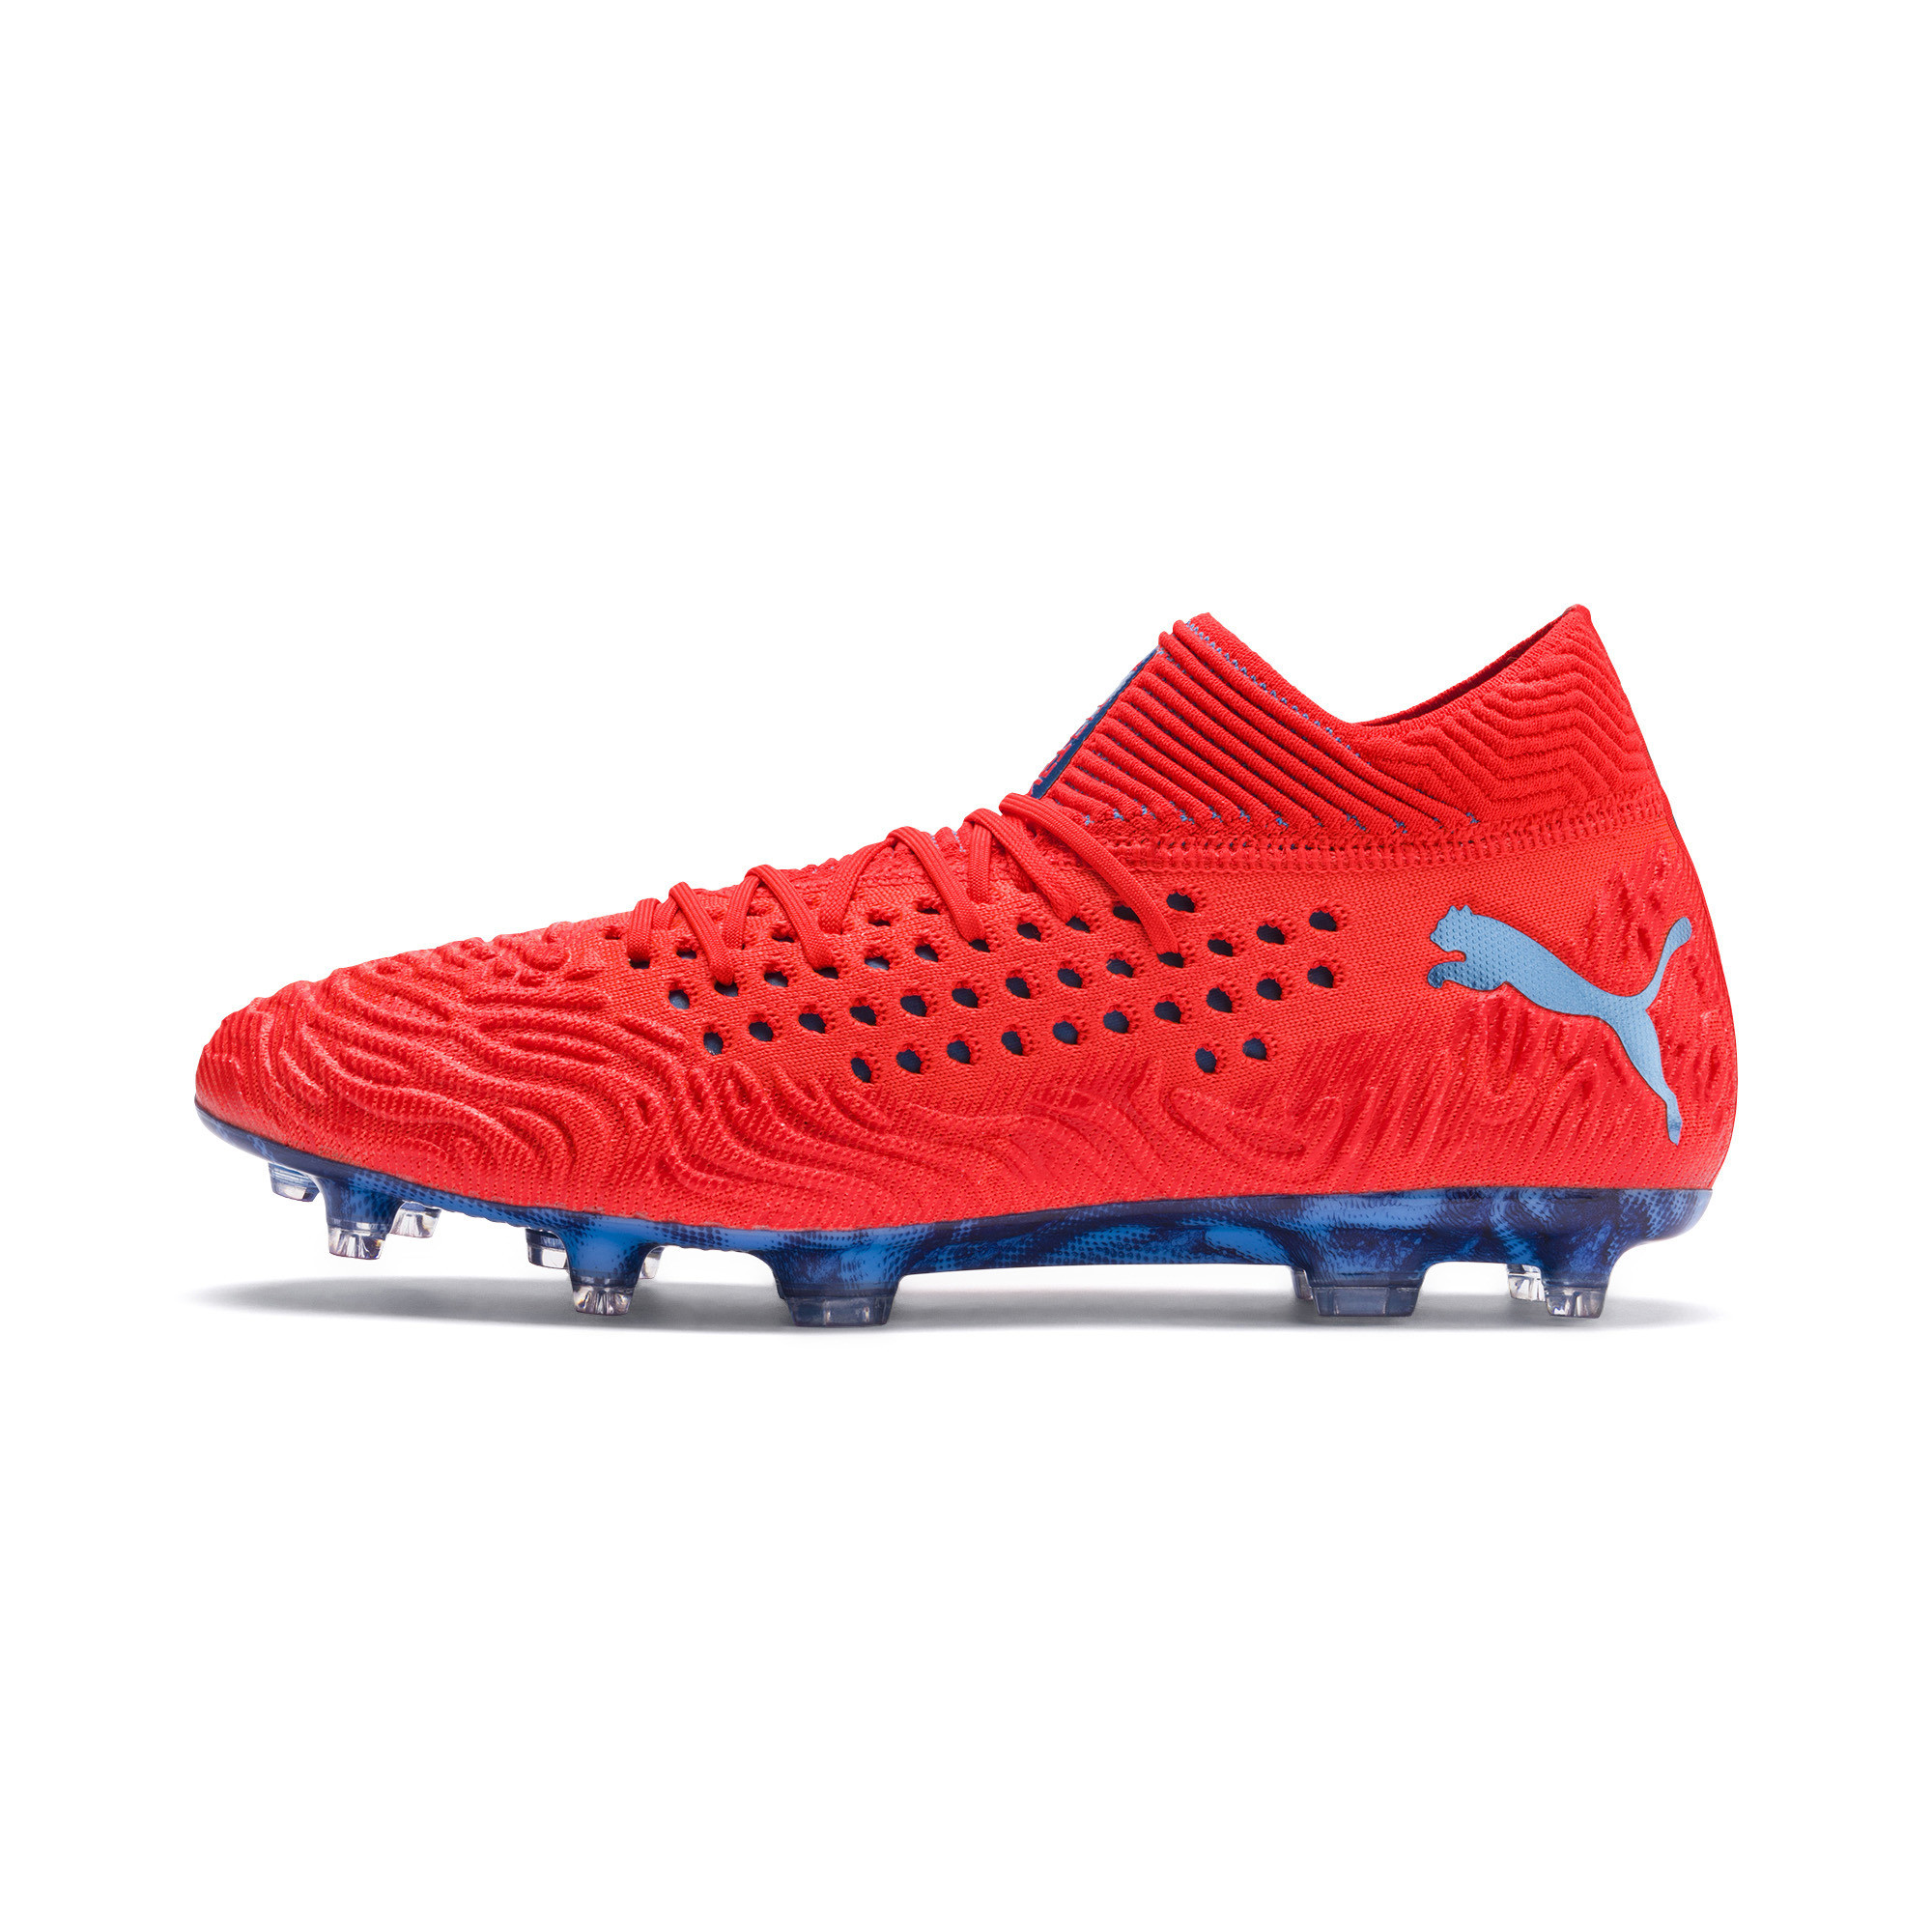 2849a0eed7c5 FUTURE 19.1 NETFIT FG/AG Men's Football Boots | 120 - Red | Puma